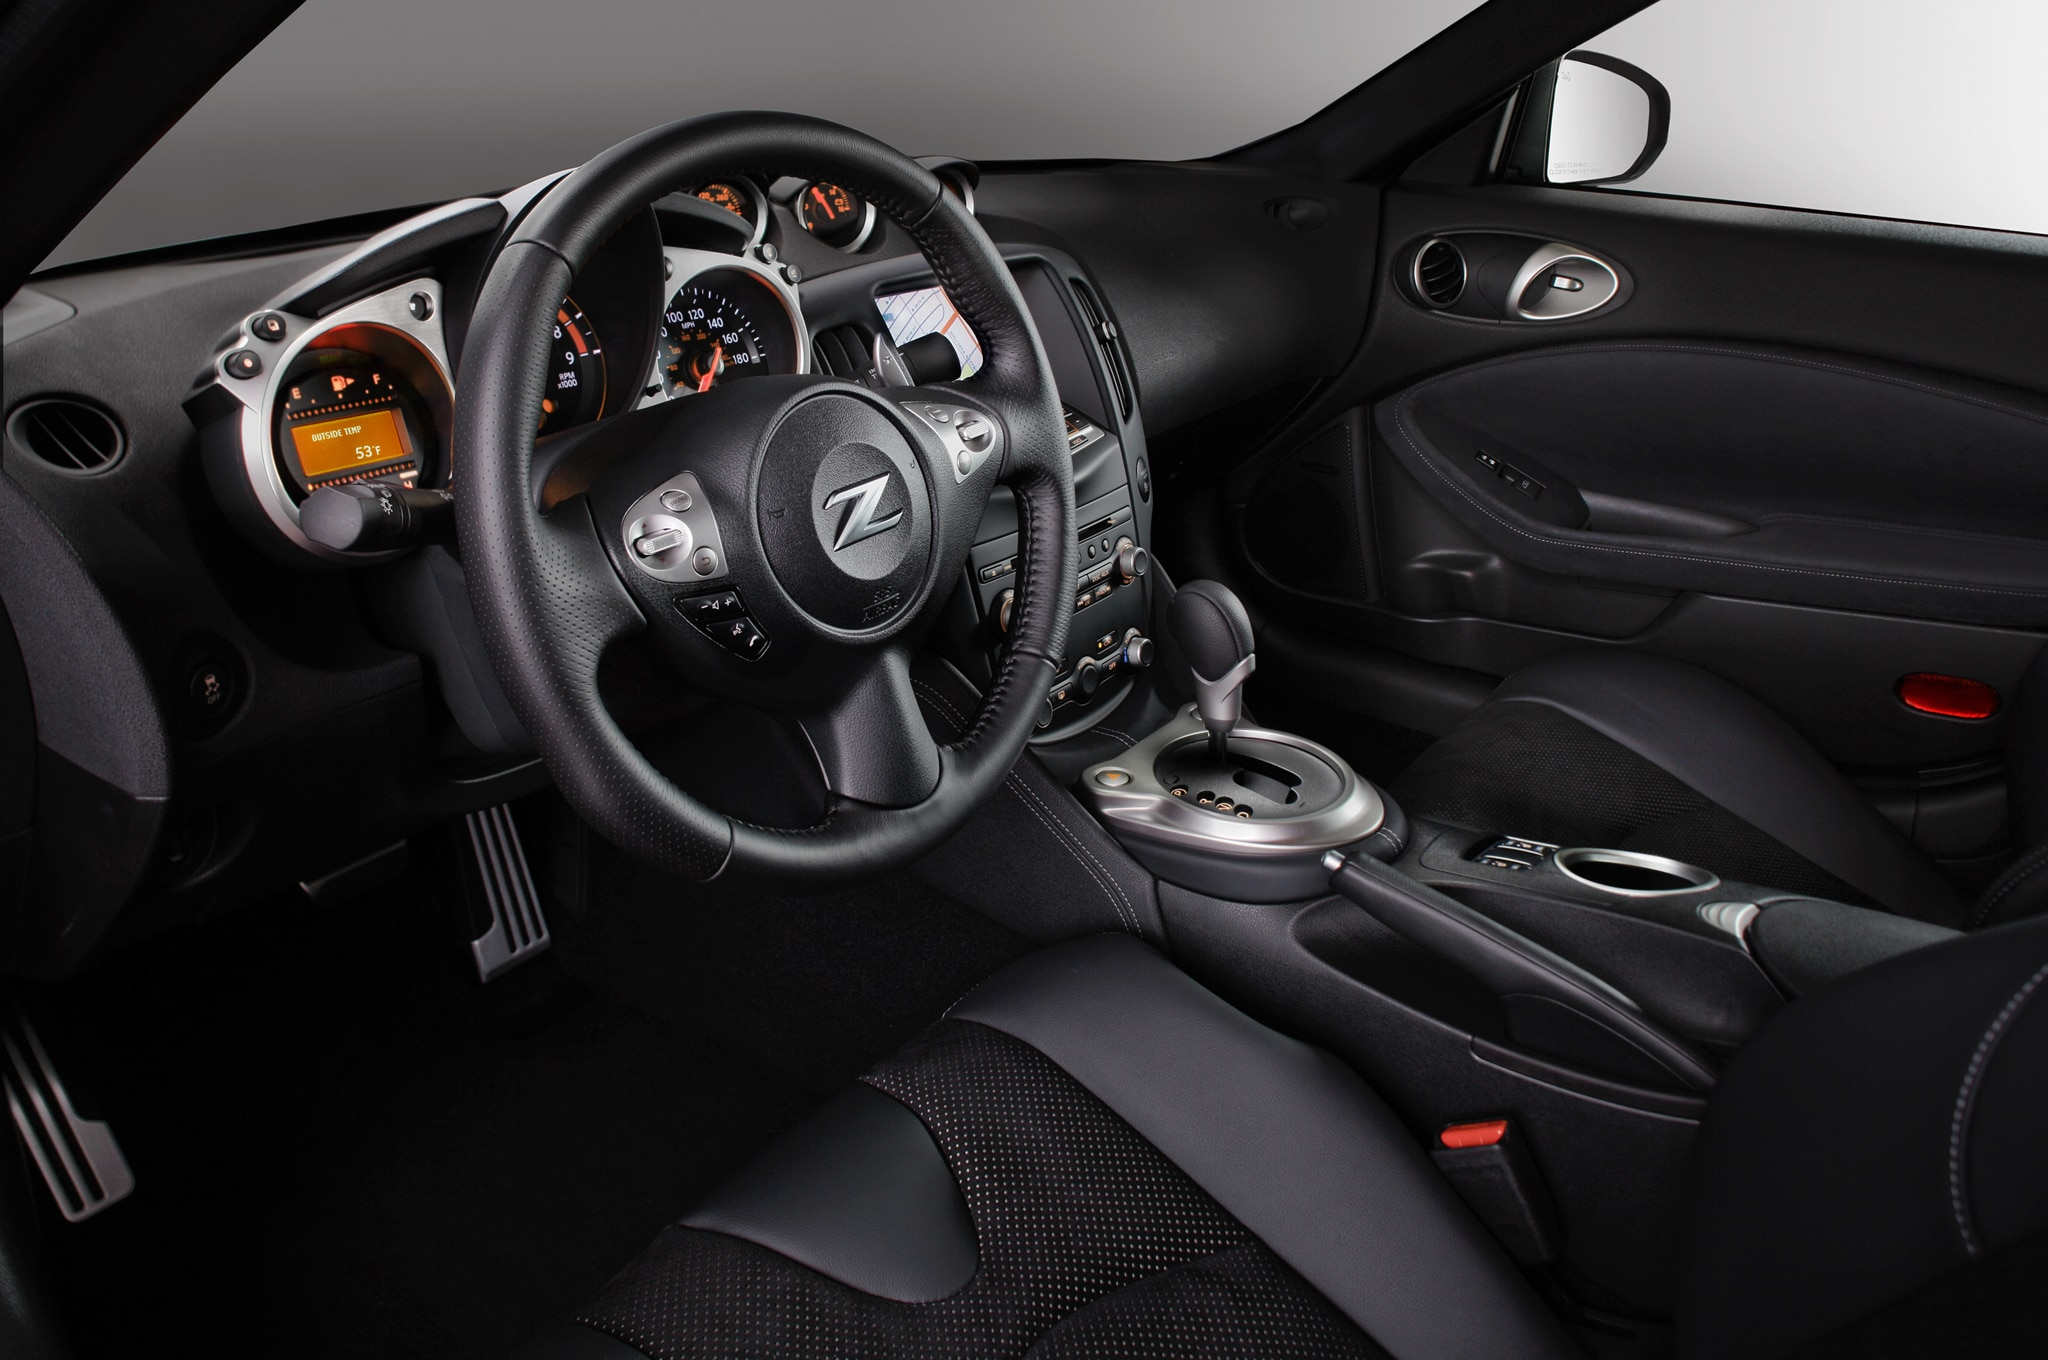 2014 nissan altima coupe interior image gallery hcpr 2014 nissan altima coupe interior gallery hd cars wallpaper 2014 nissan altima coupe interior gallery hd vanachro Gallery